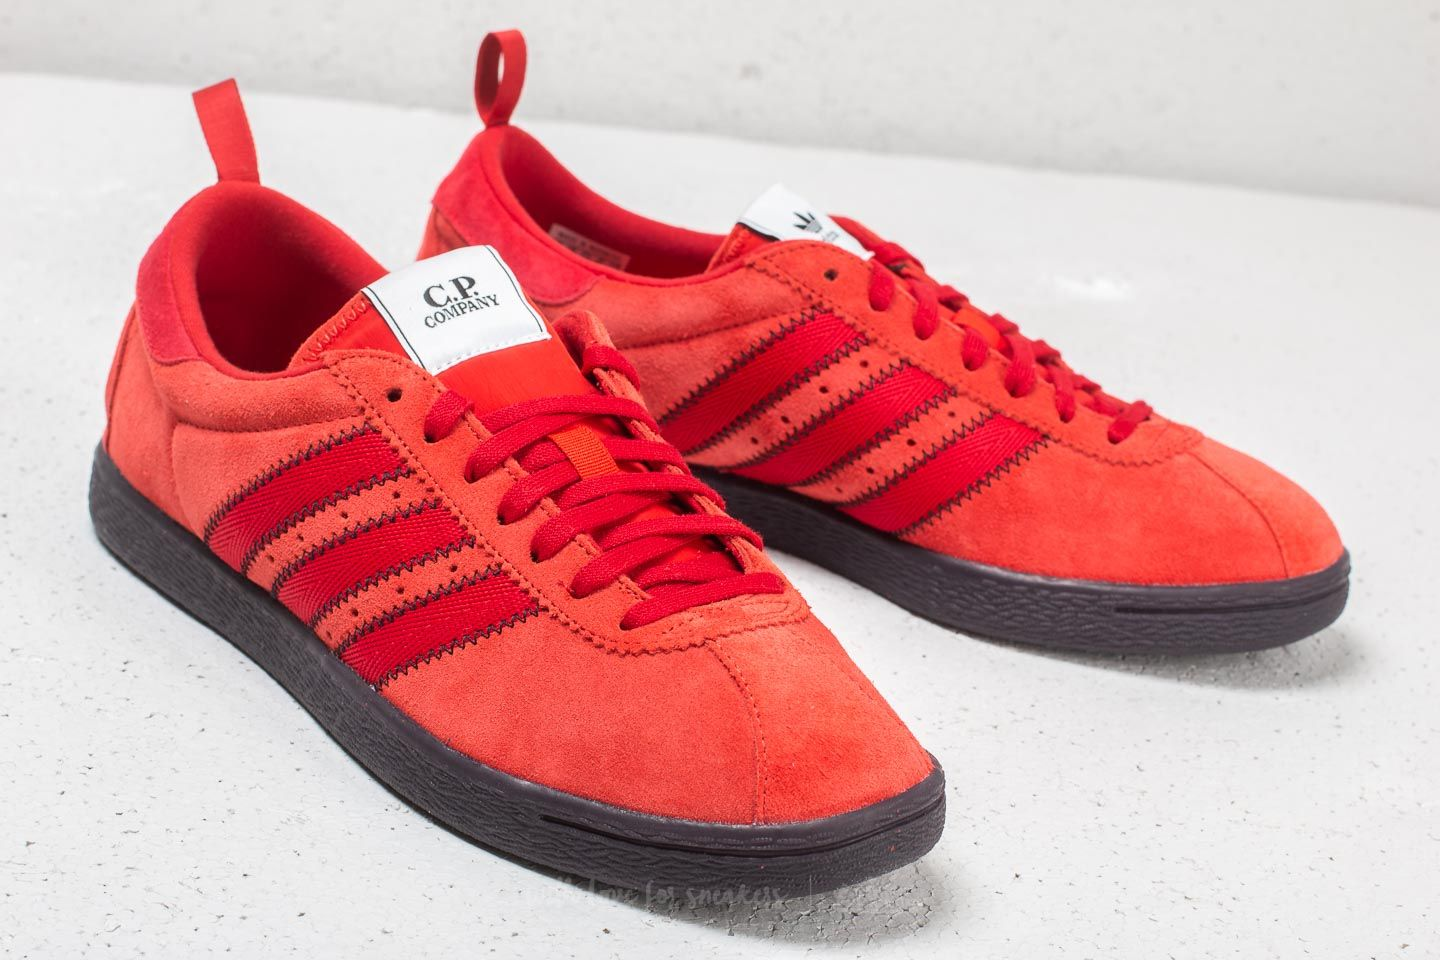 size 40 33afe 8e565 adidas x C.P. Company Street Brick/ Red Nitro/ Surreal Red ...